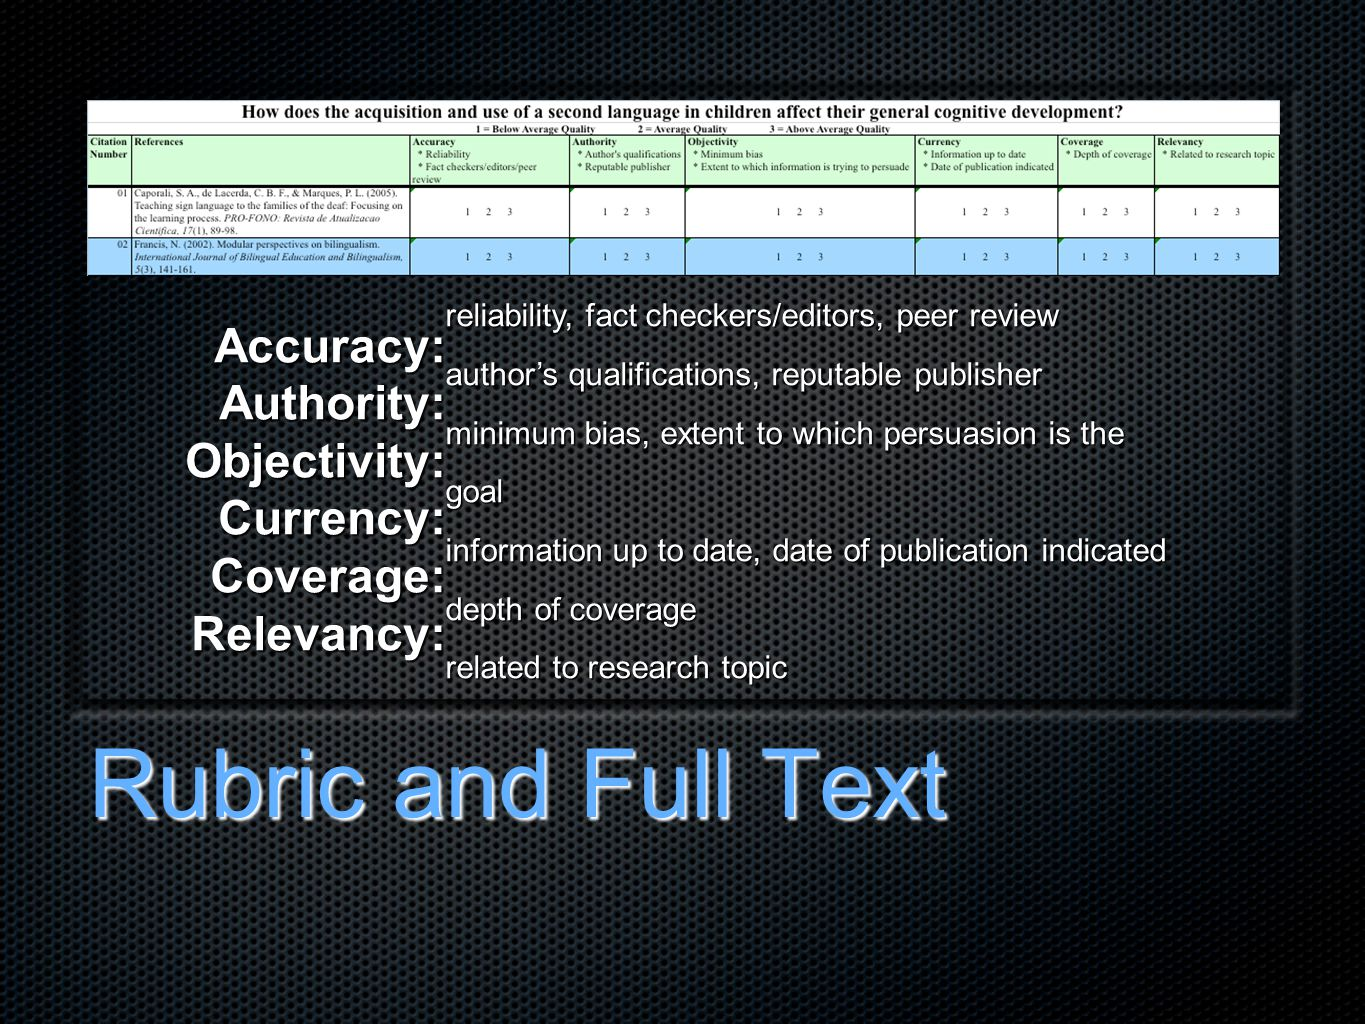 Rubric and Full Text Accuracy:Authority:Objectivity:Currency:Coverage:Relevancy: reliability, fact checkers/editors, peer review author's qualifications, reputable publisher minimum bias, extent to which persuasion is the goal information up to date, date of publication indicated depth of coverage related to research topic